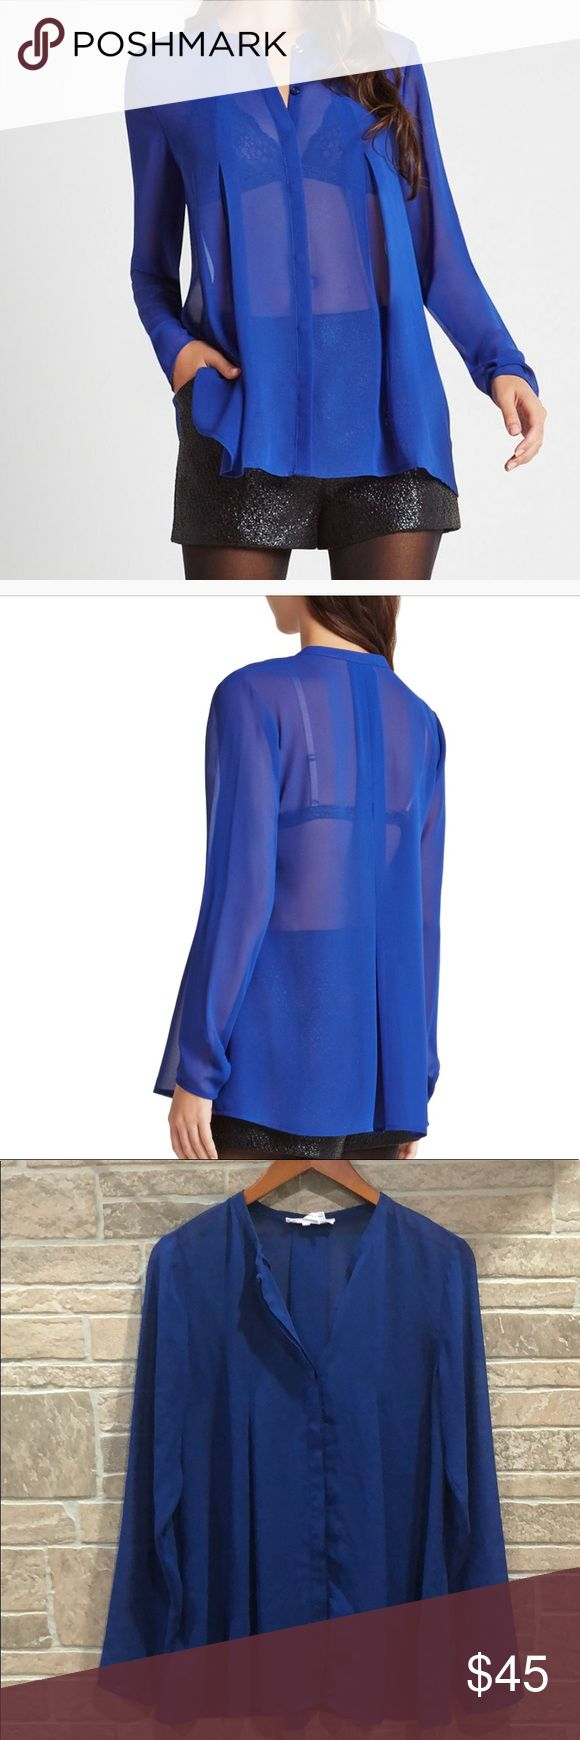 BCBGeneration Electric Blue Sheer Box Pleat Top M New condition. (I'm unsure if I've worn this top). Still has spare button tag attached.  Beautiful sheer blue BCBGeneration Tops Button Down Shirts